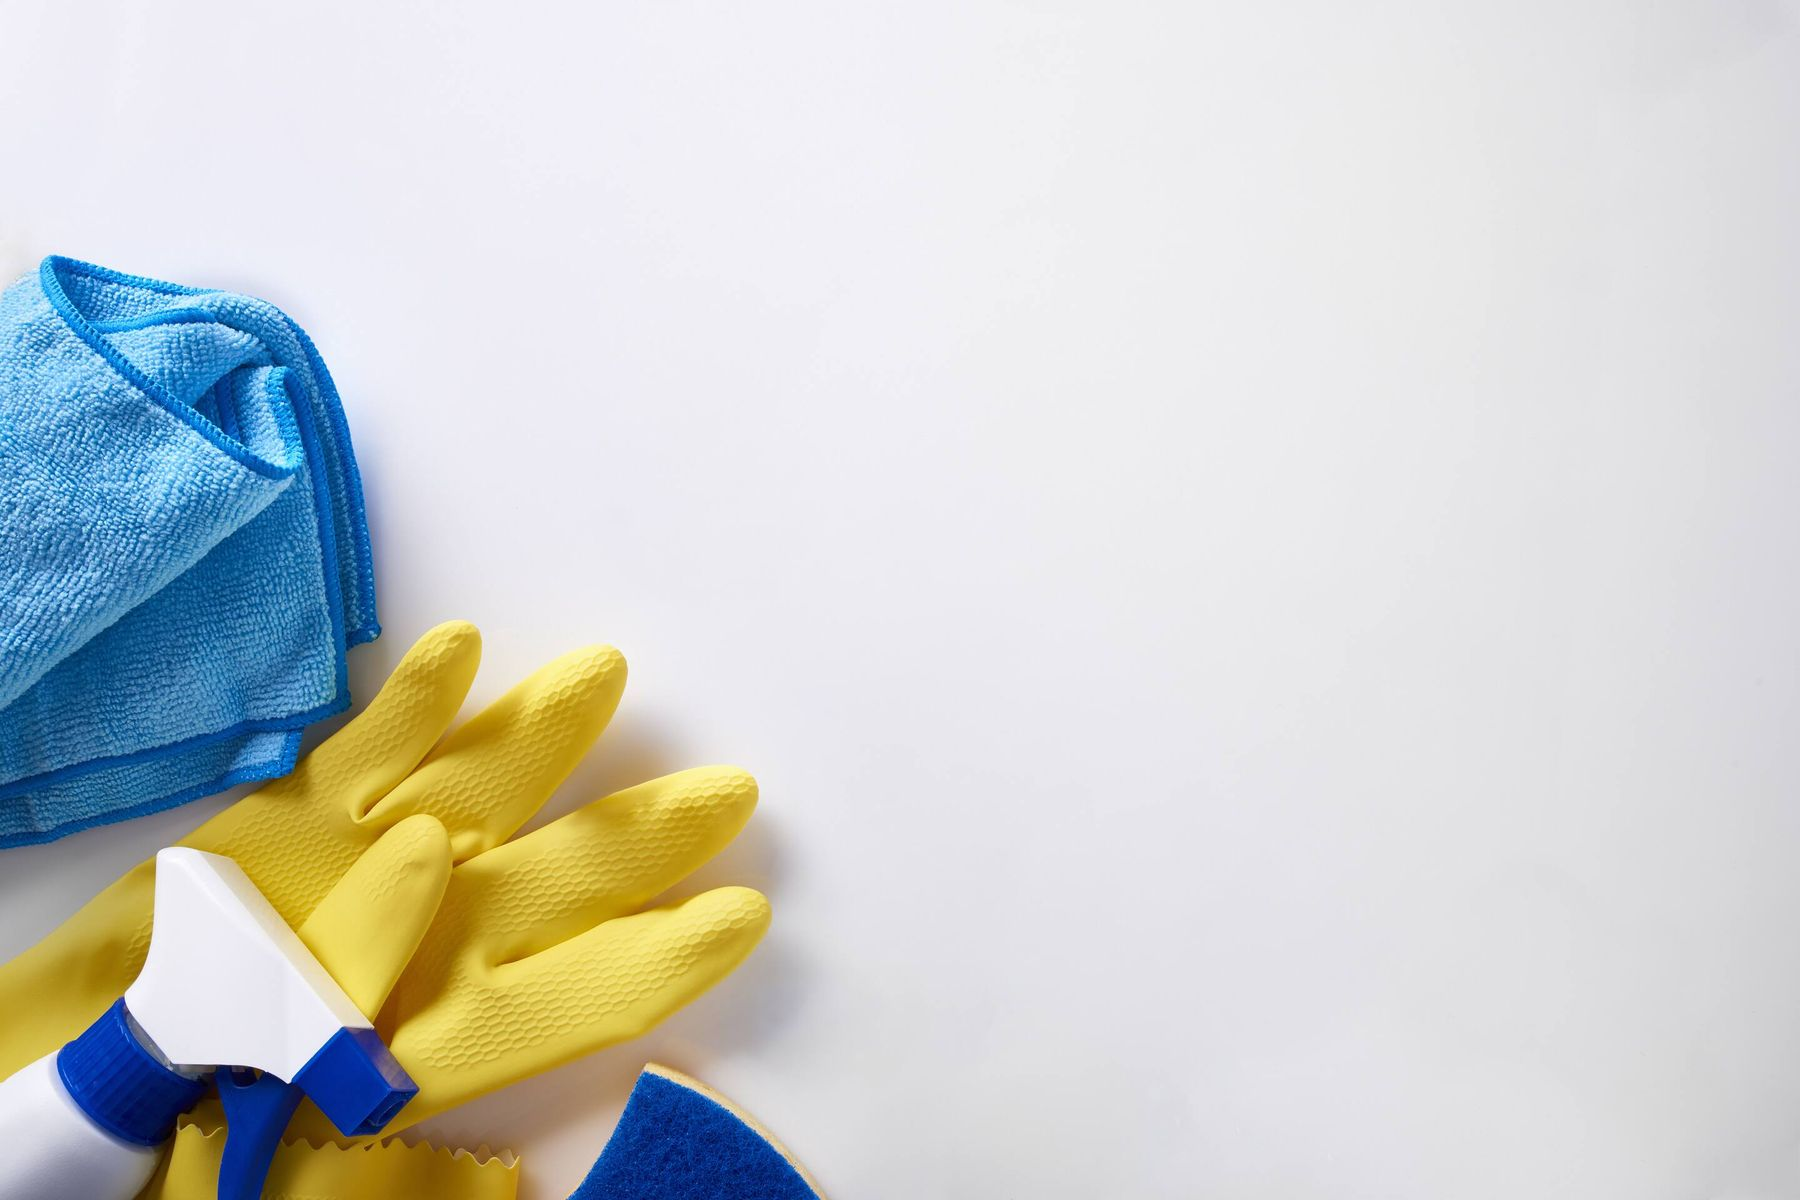 Gloves and cleaning products used to clean interior